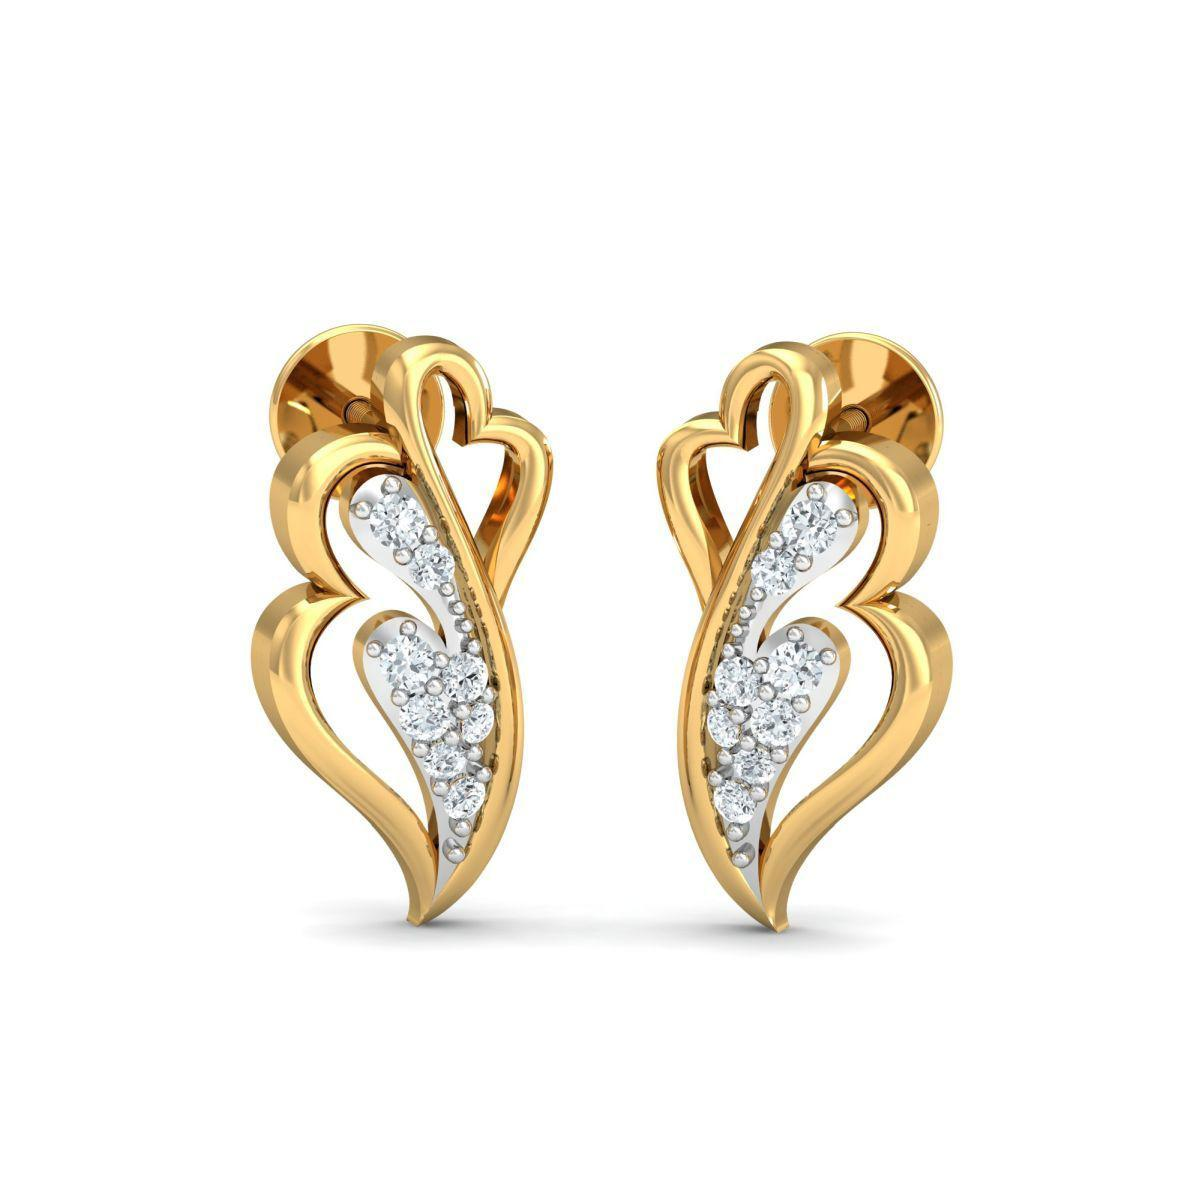 Diamoire Jewels 18kt Yellow Gold 0.11ct Pave Diamond Infinity Earrings II PlGvr